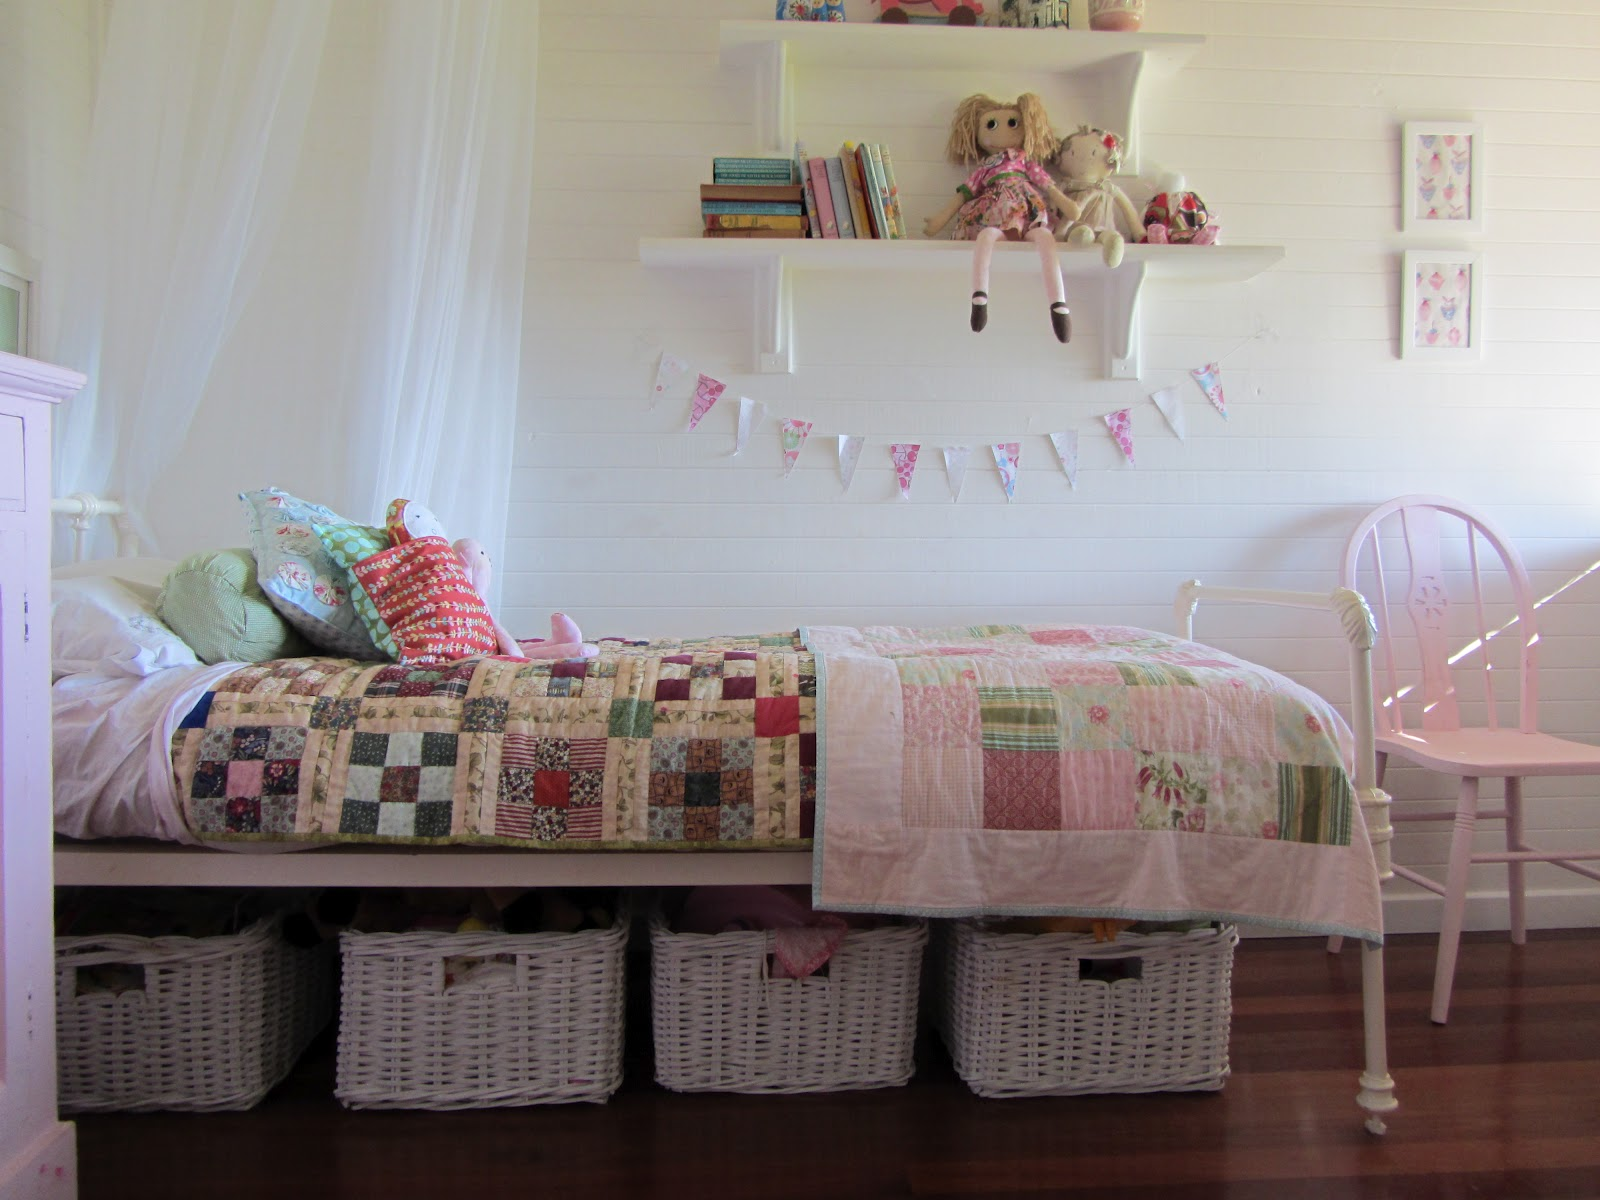 Thom haus handmade decorating and storage ideas for a Little girls bedroom decorating ideas